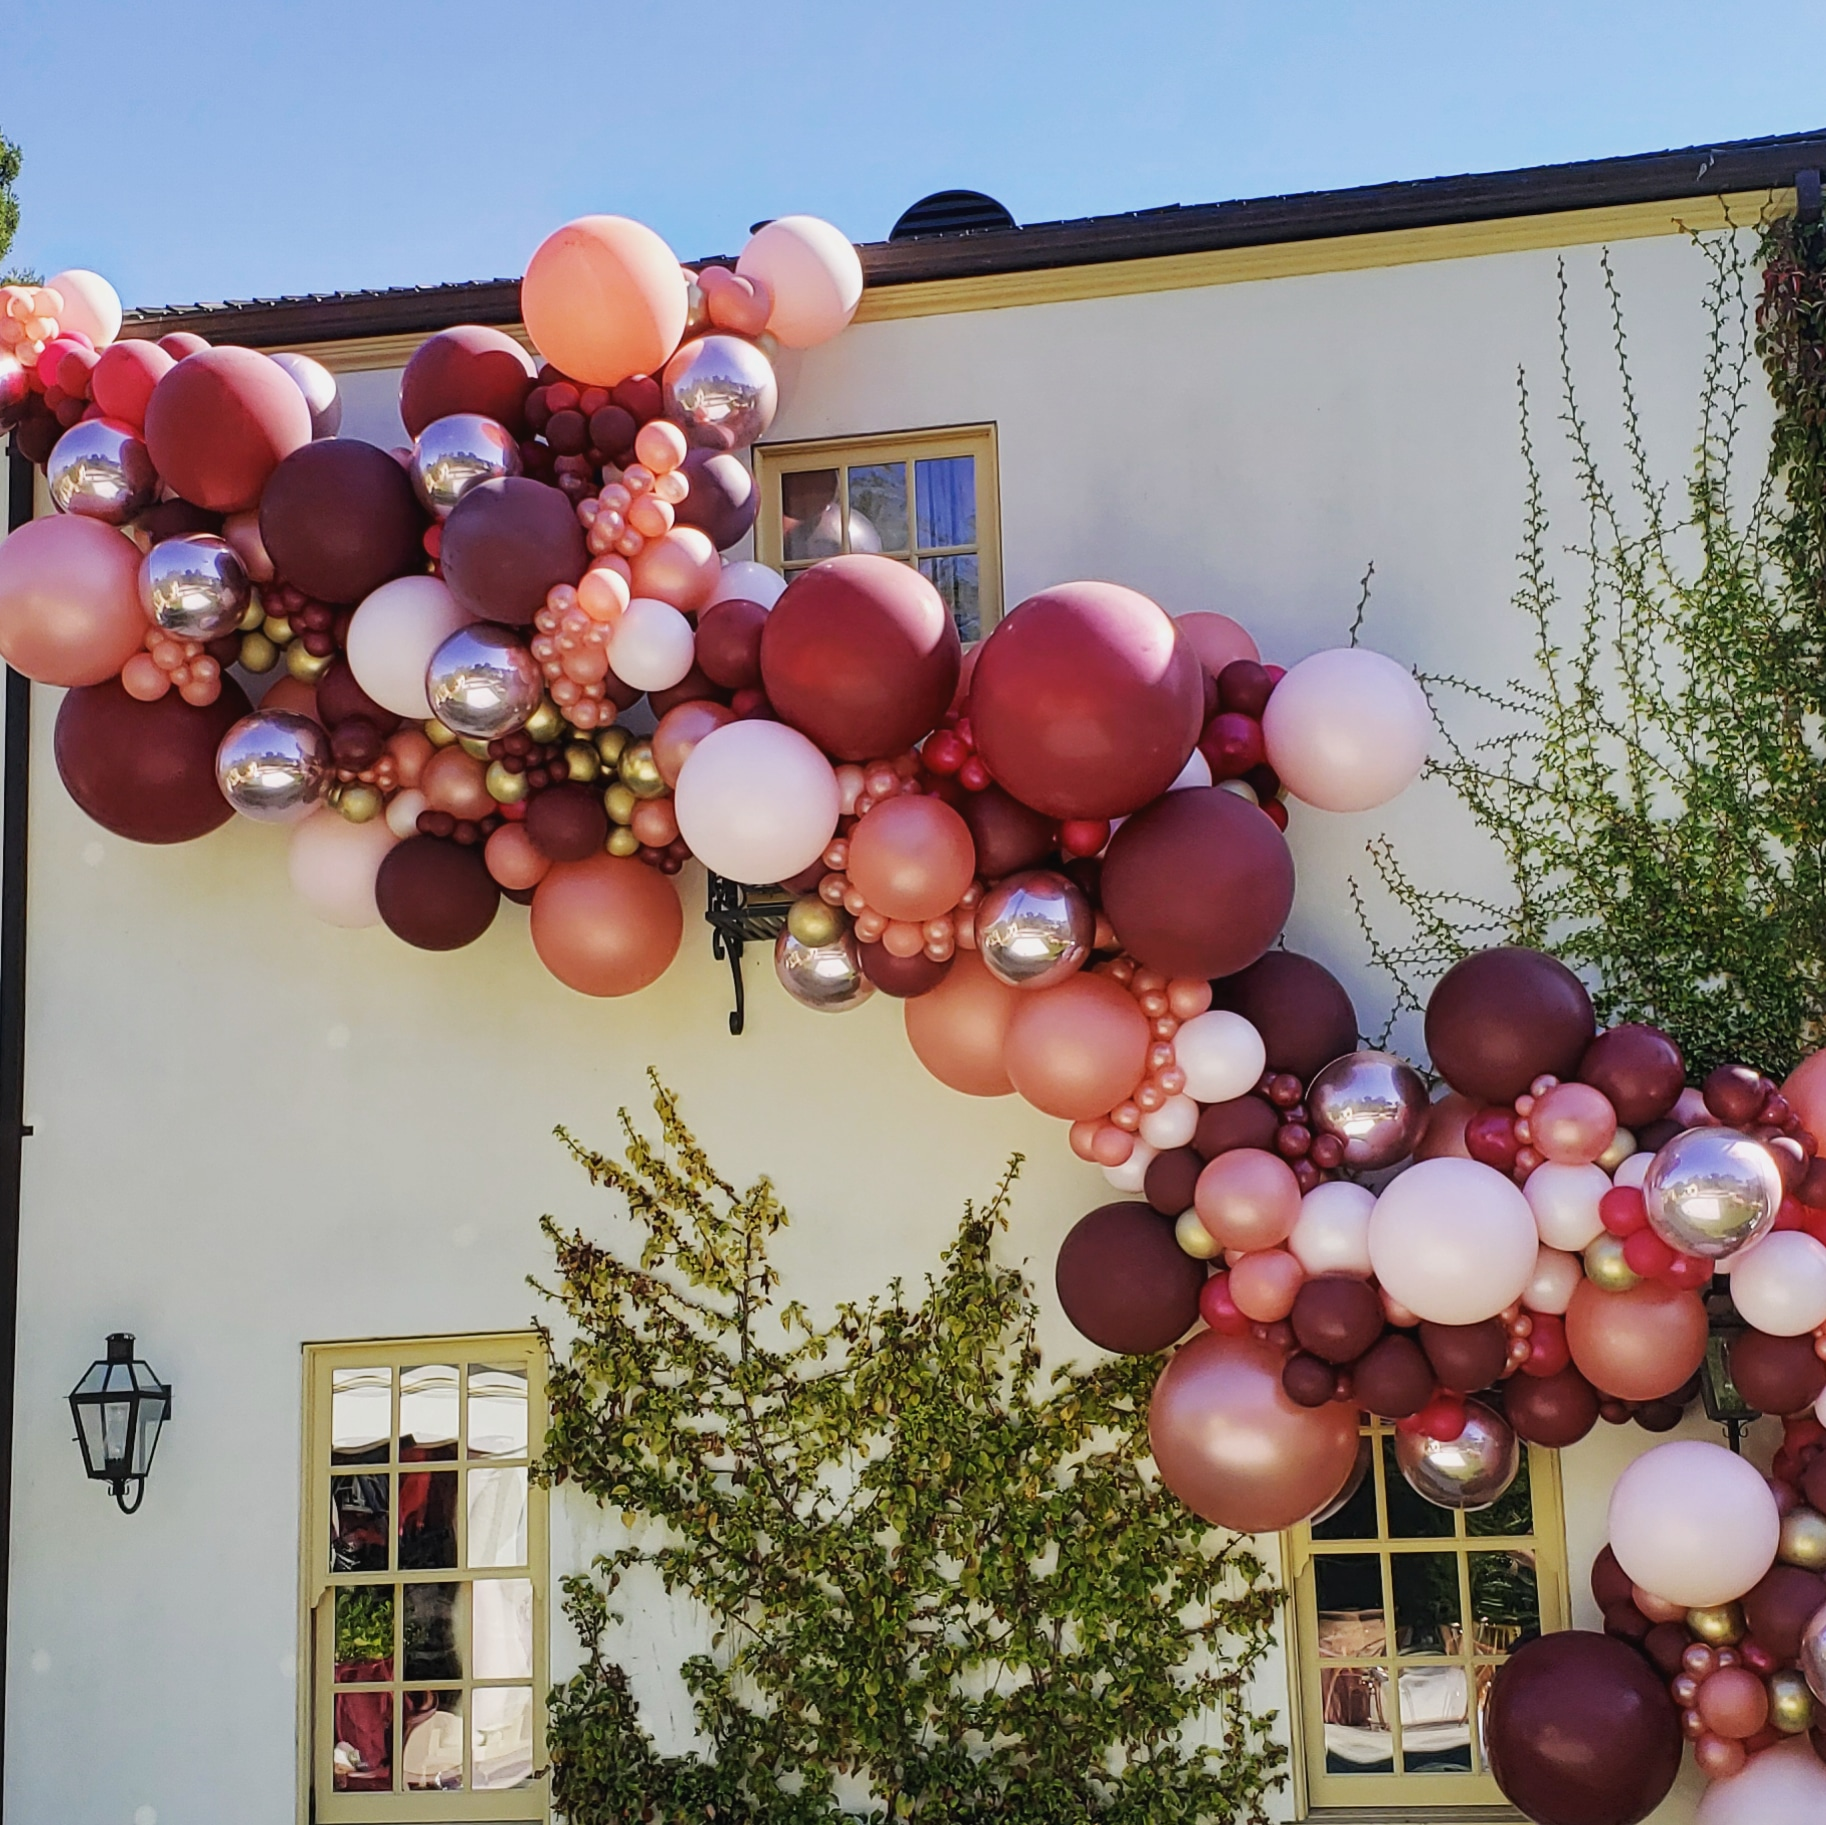 Wedding Balloon Installation SF Balloon Art - Zim Balloons.jpg